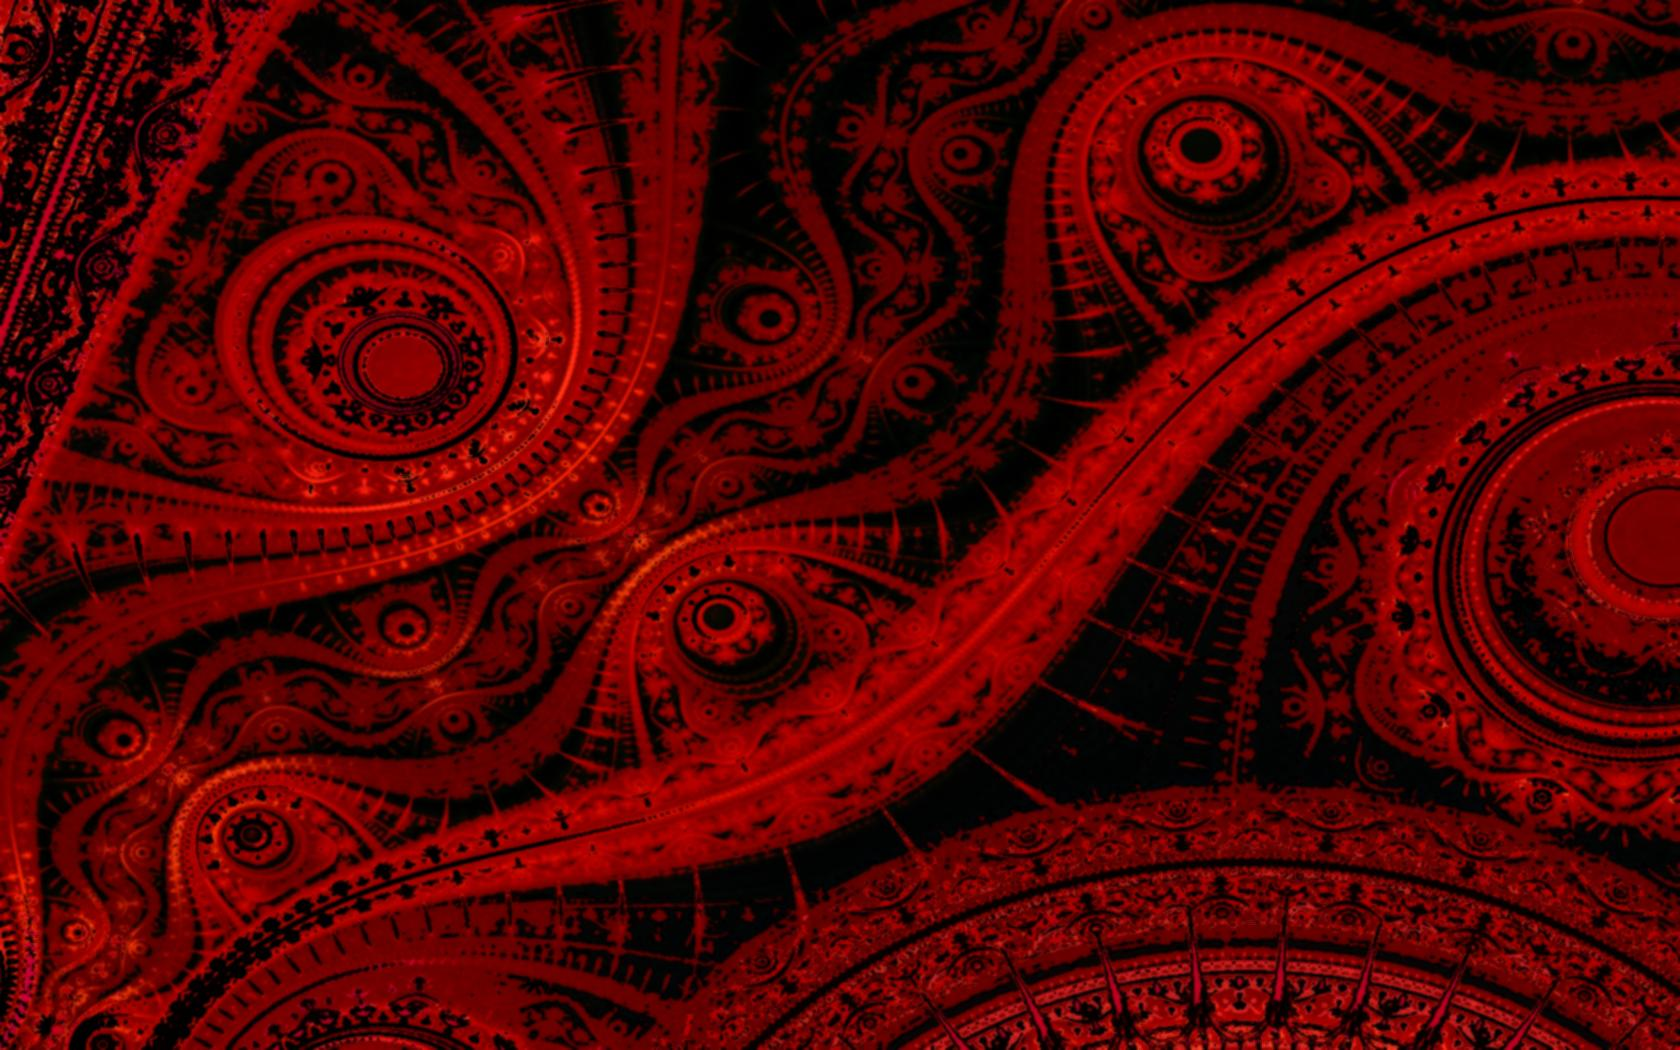 Black And Red Wallpaper Abstract Gallery October rh